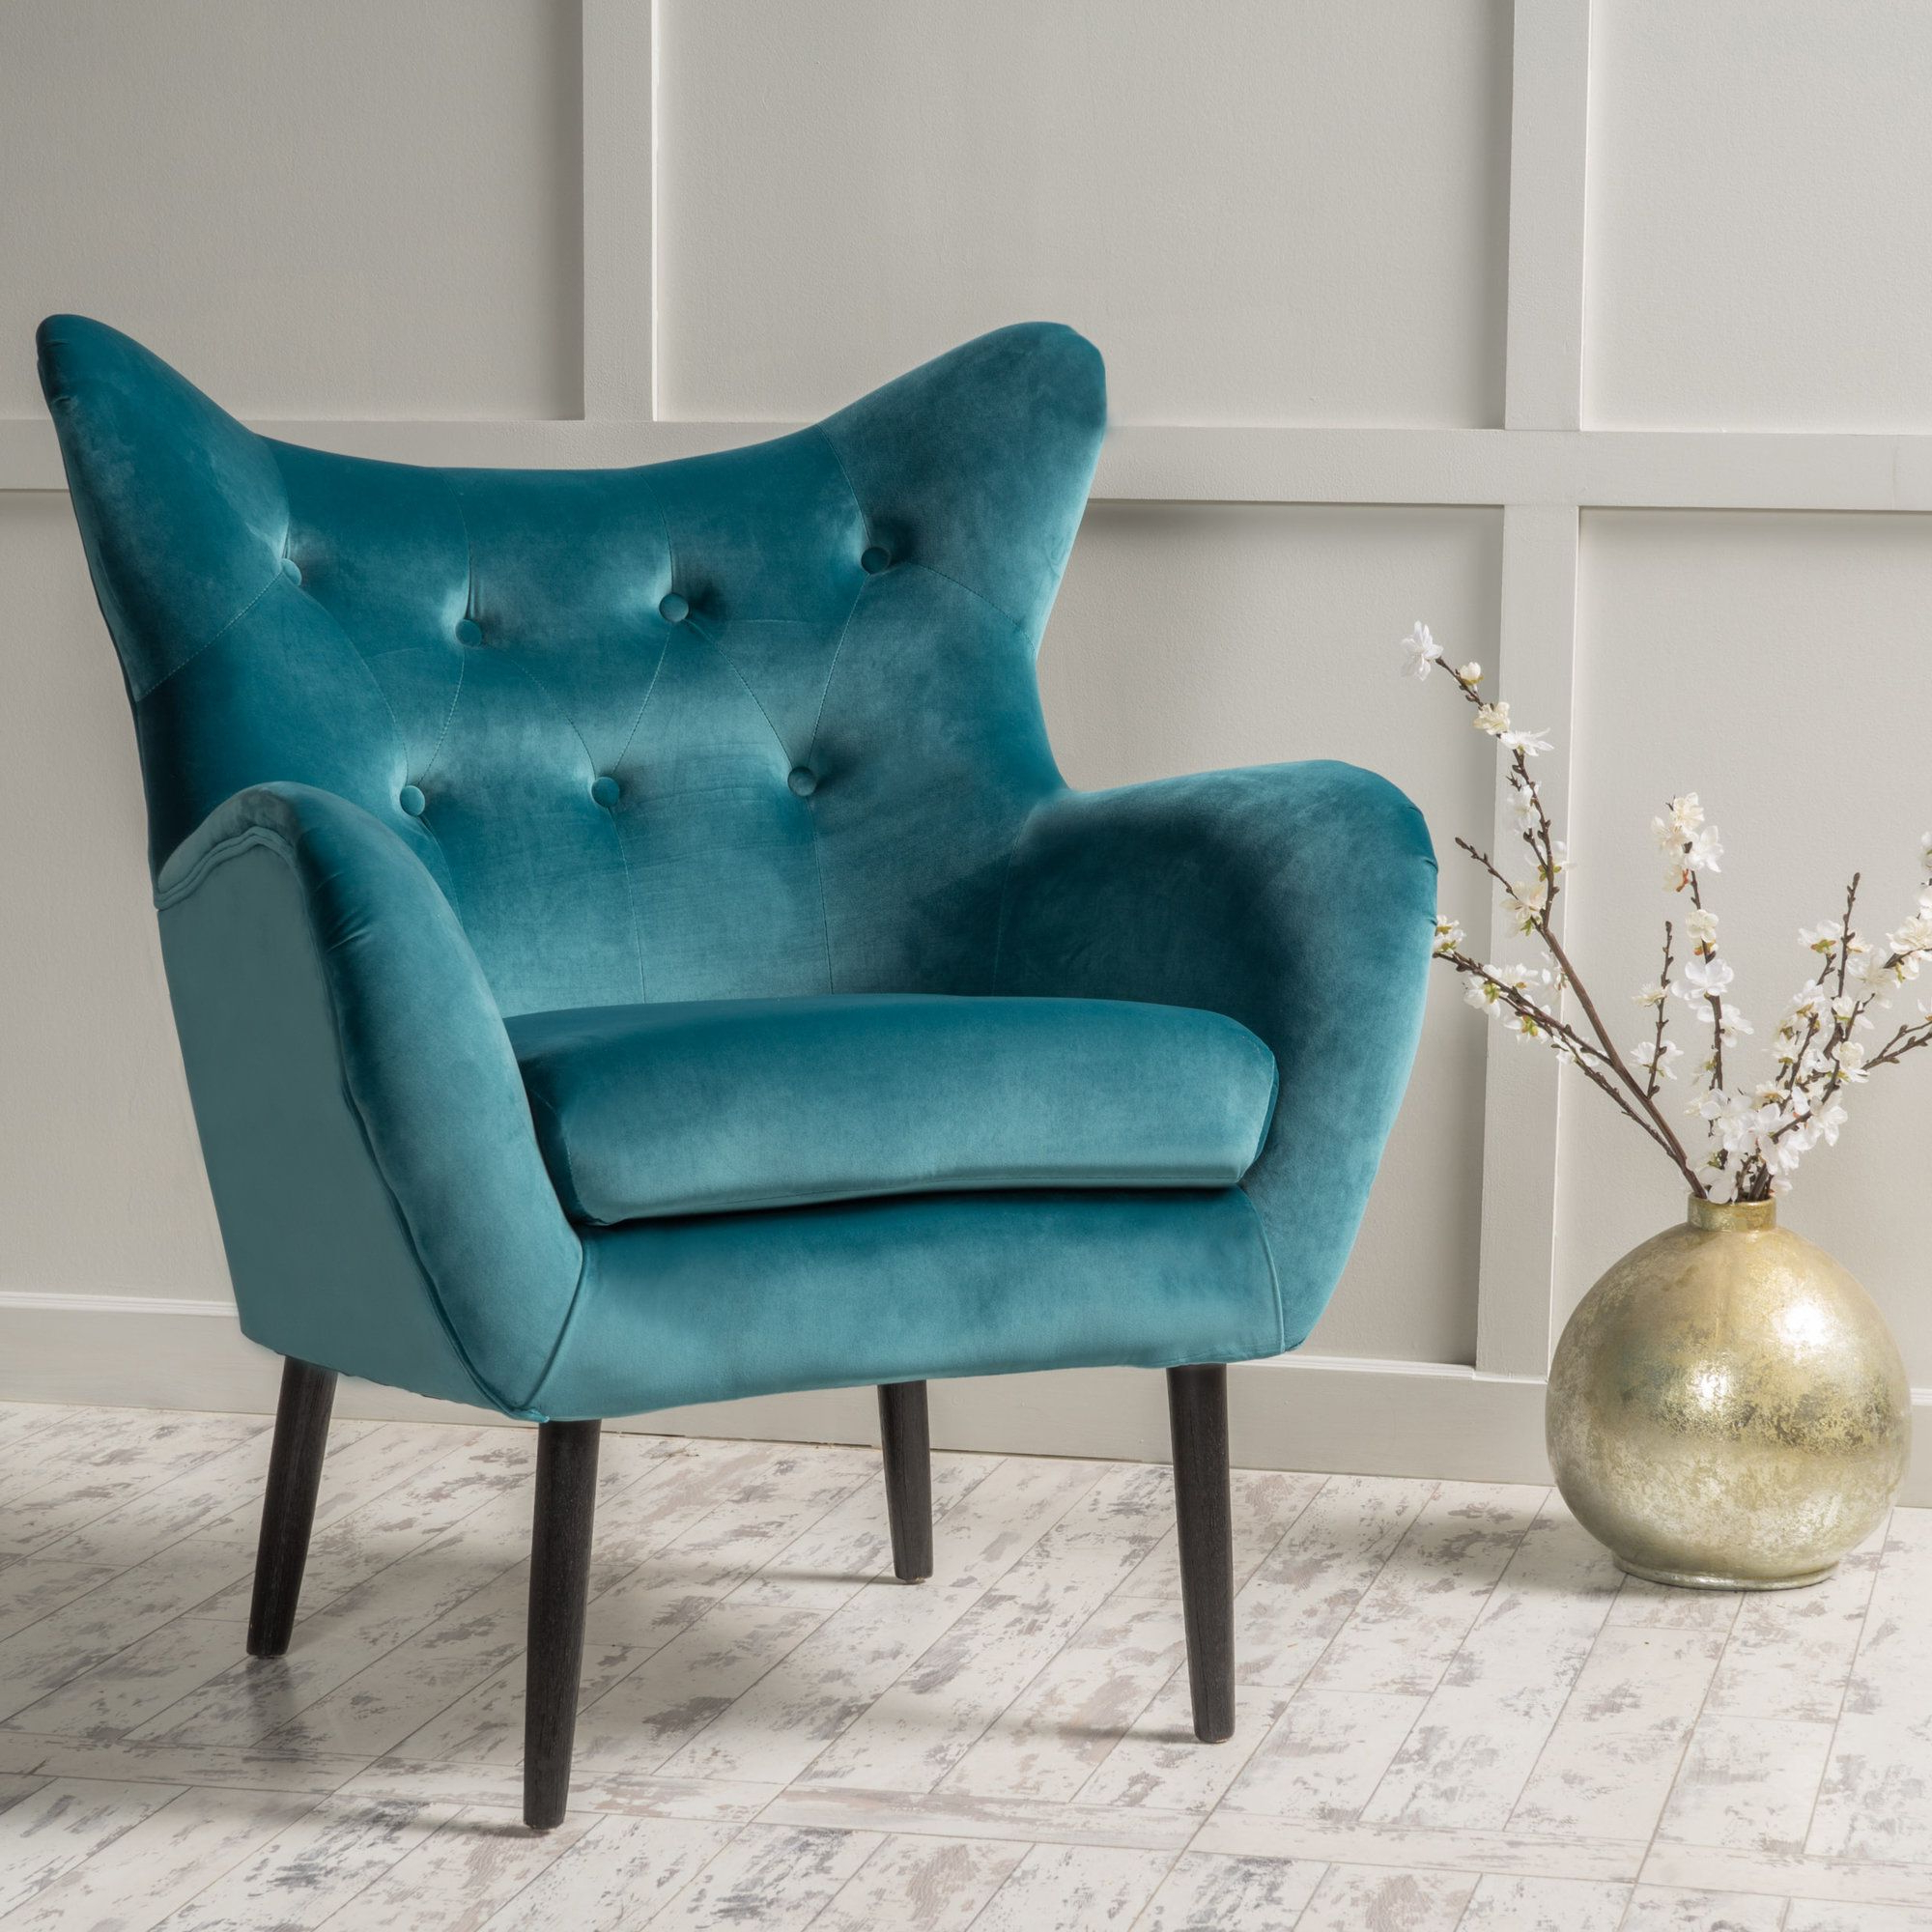 Living Room Chairs, Living Room Throughout Most Recent Bouck Wingback Chairs (View 11 of 20)